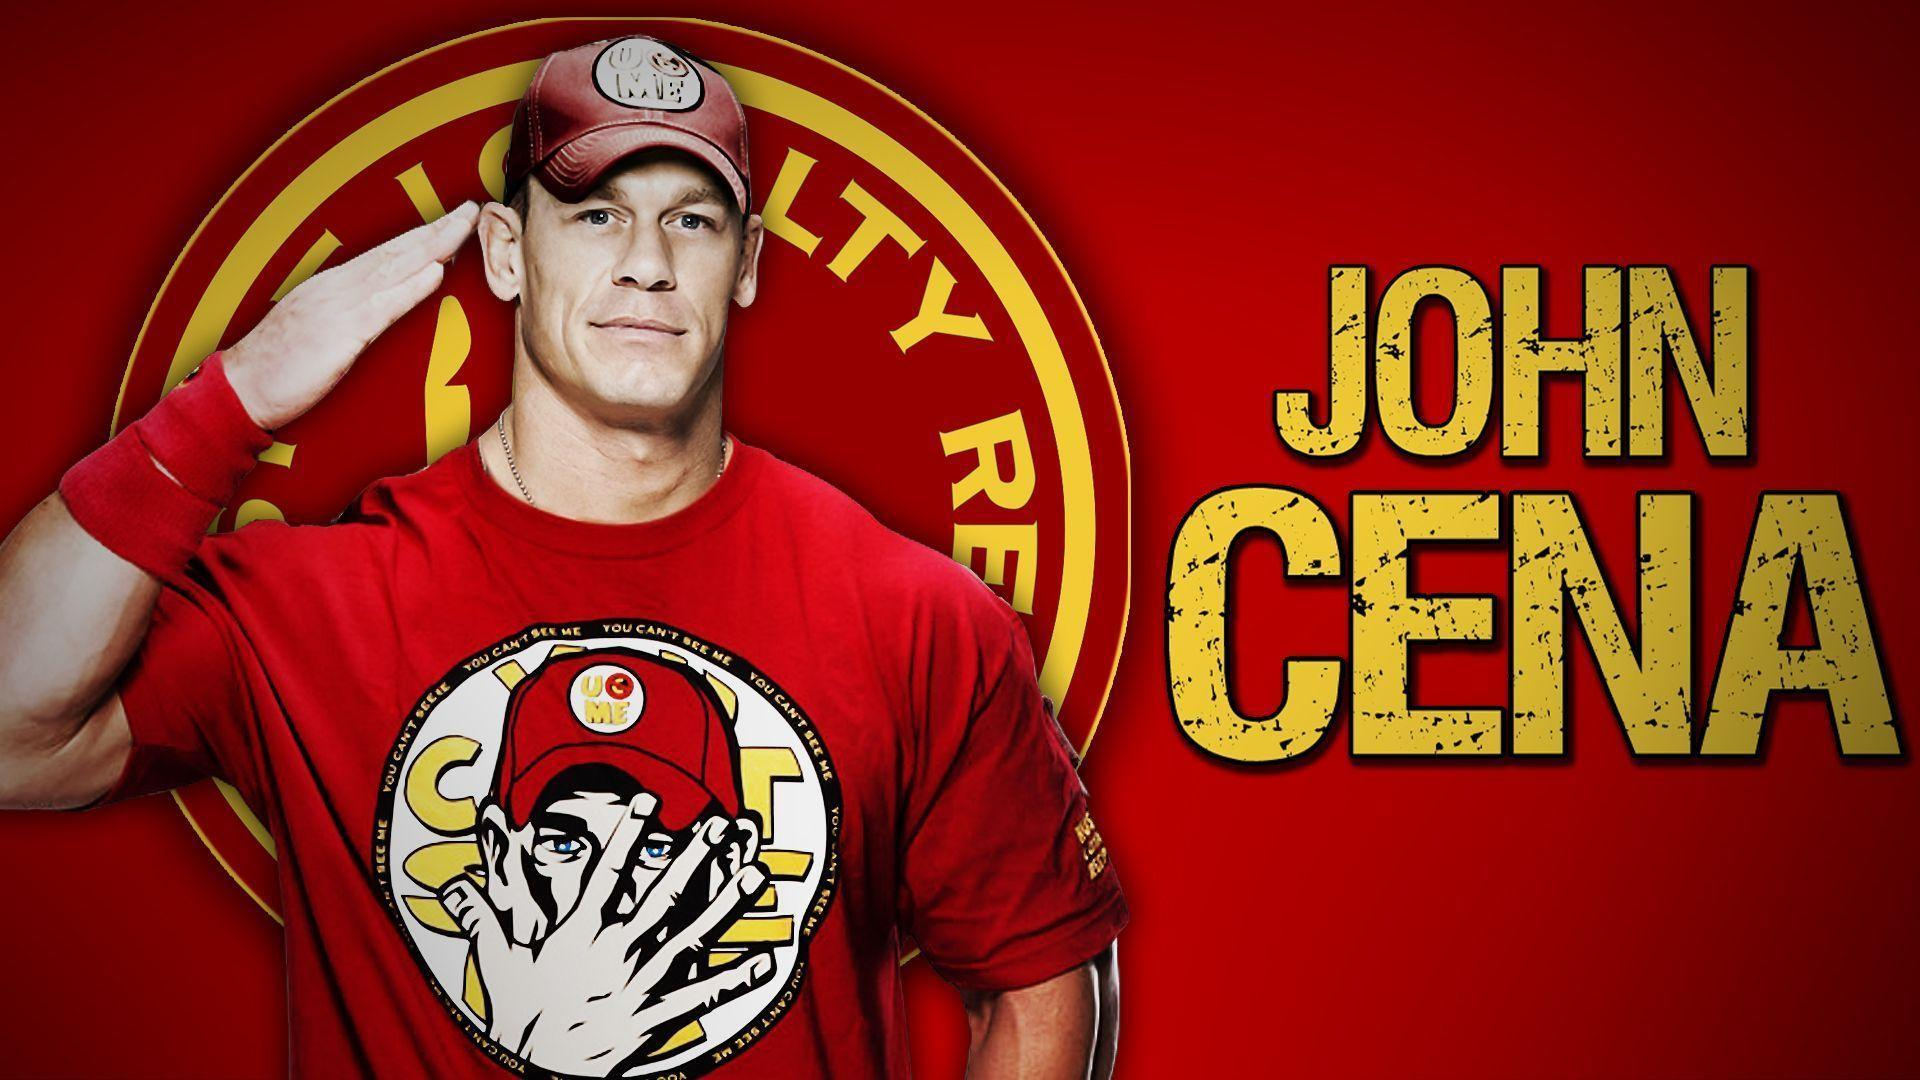 Wwe John Cena Wallpaper 2015 Hd